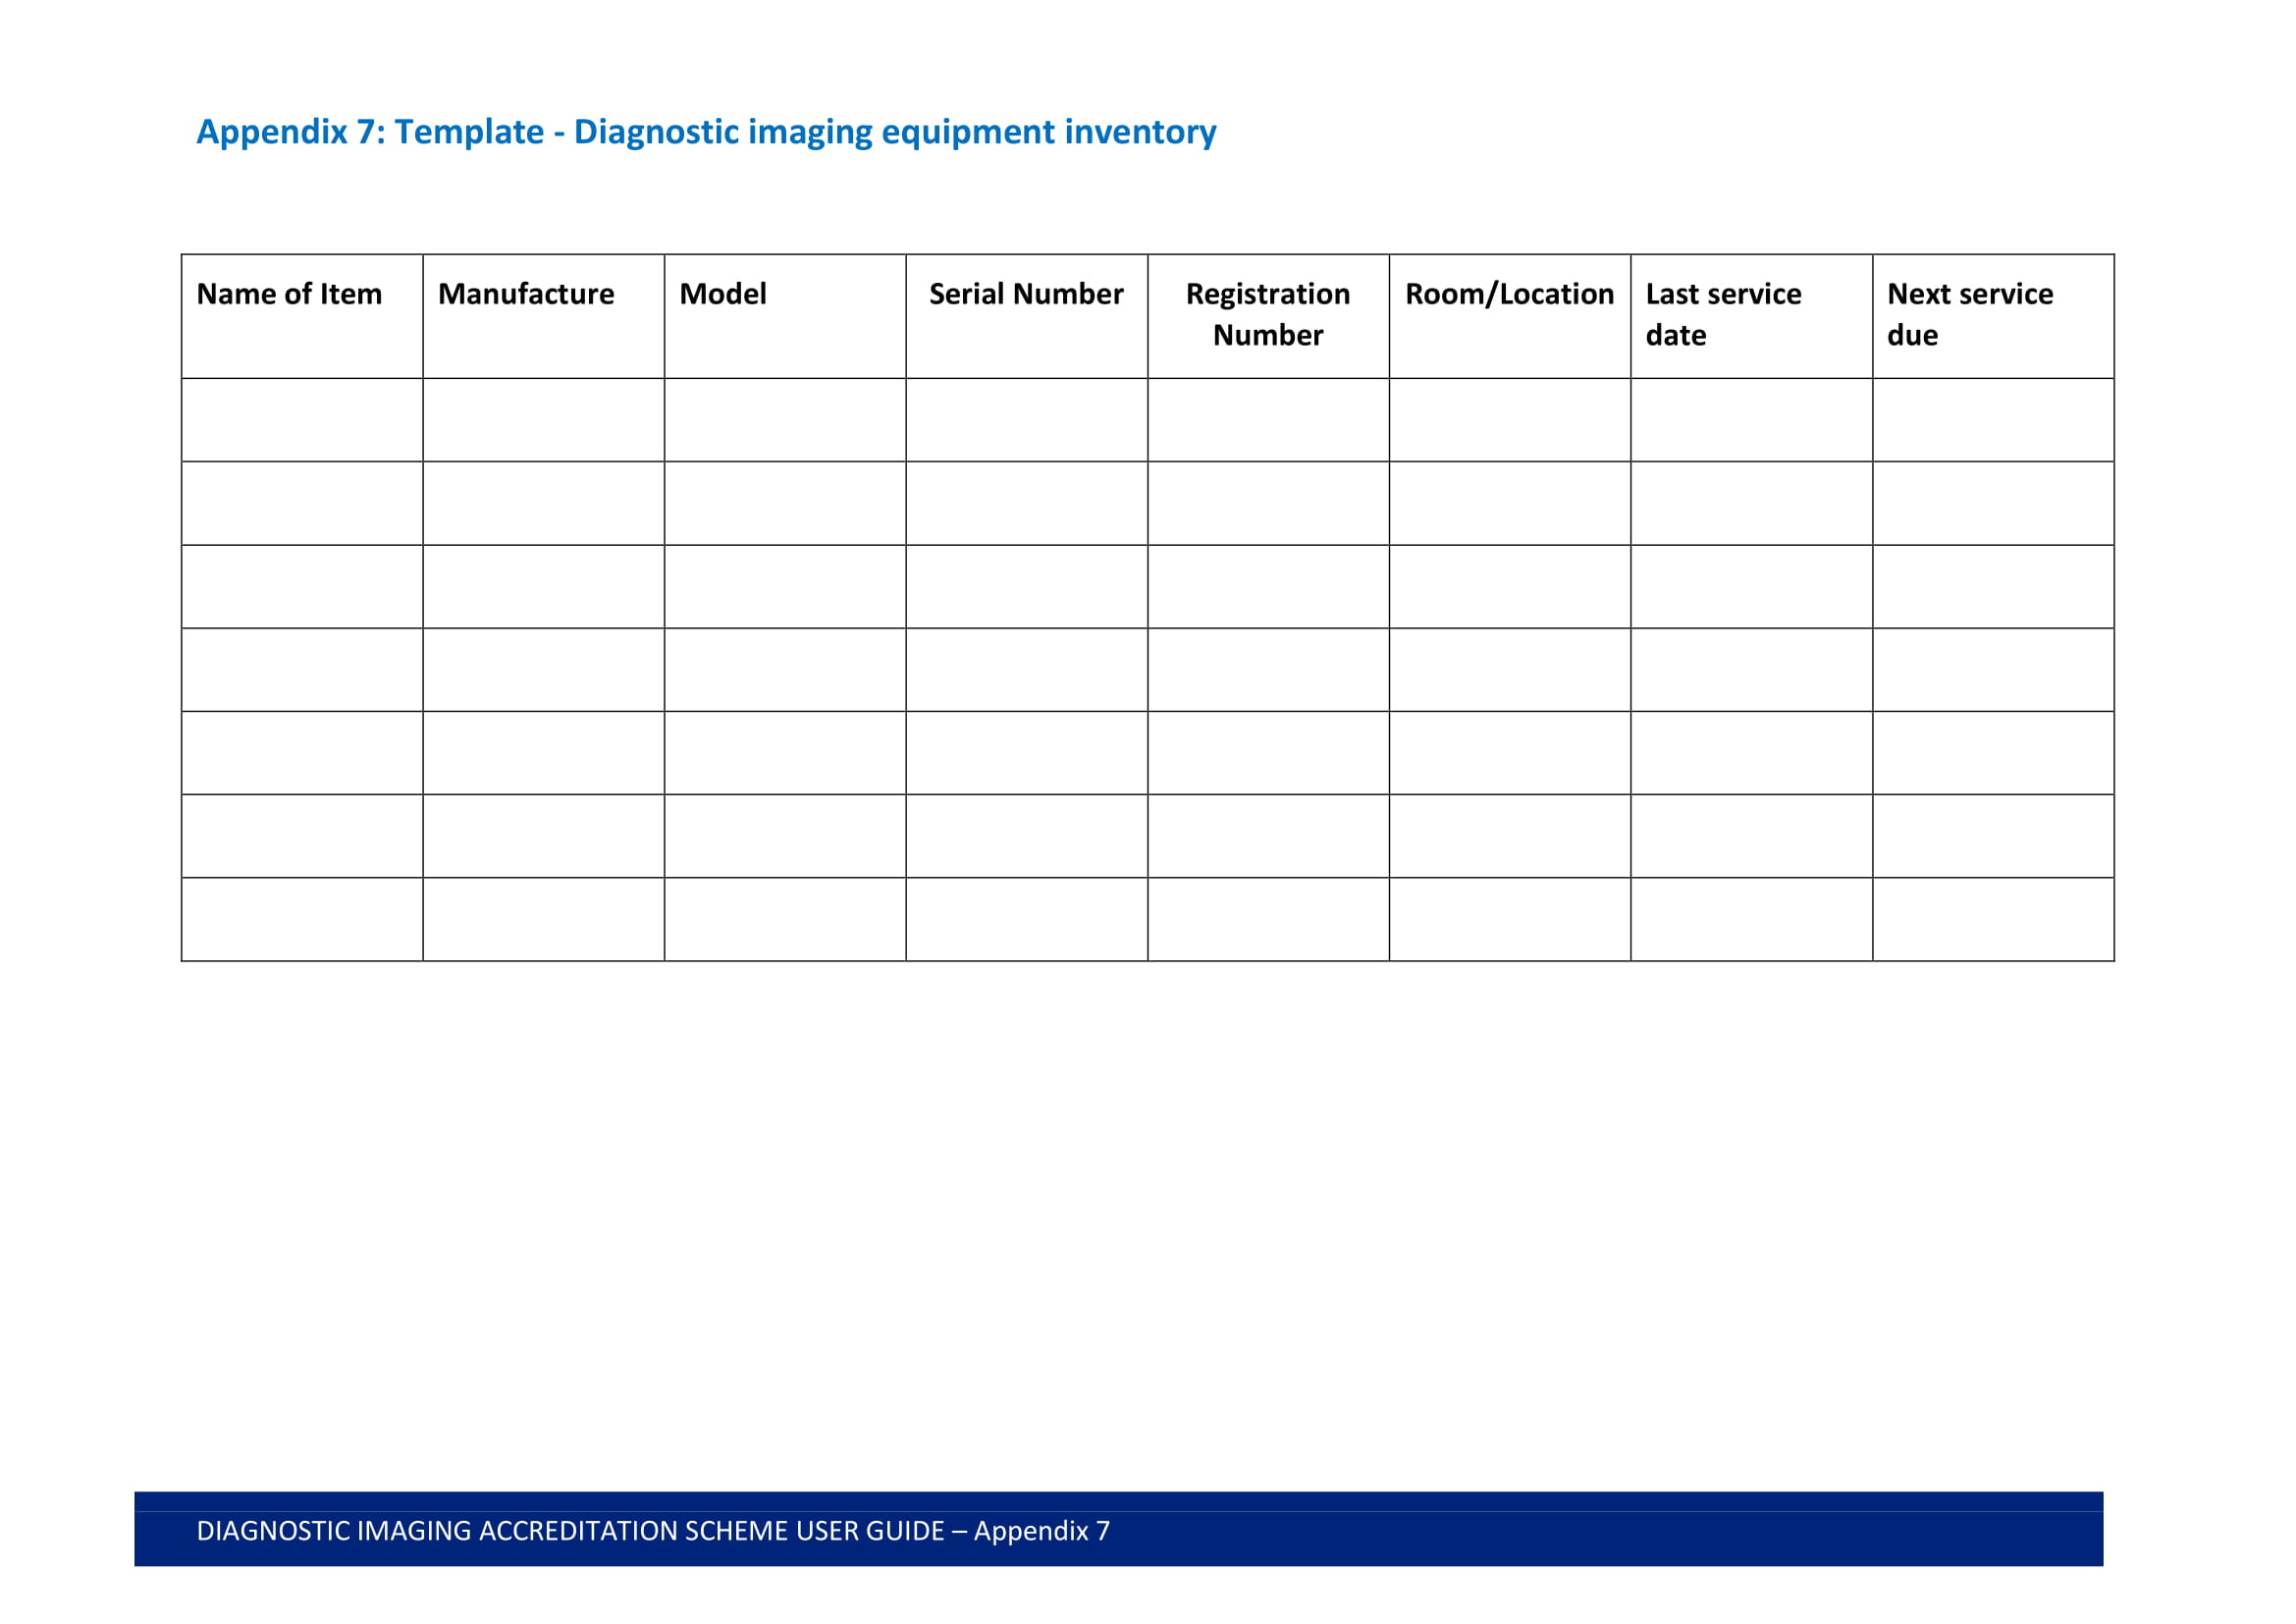 diagnostic imaging equipment inventory format example 1